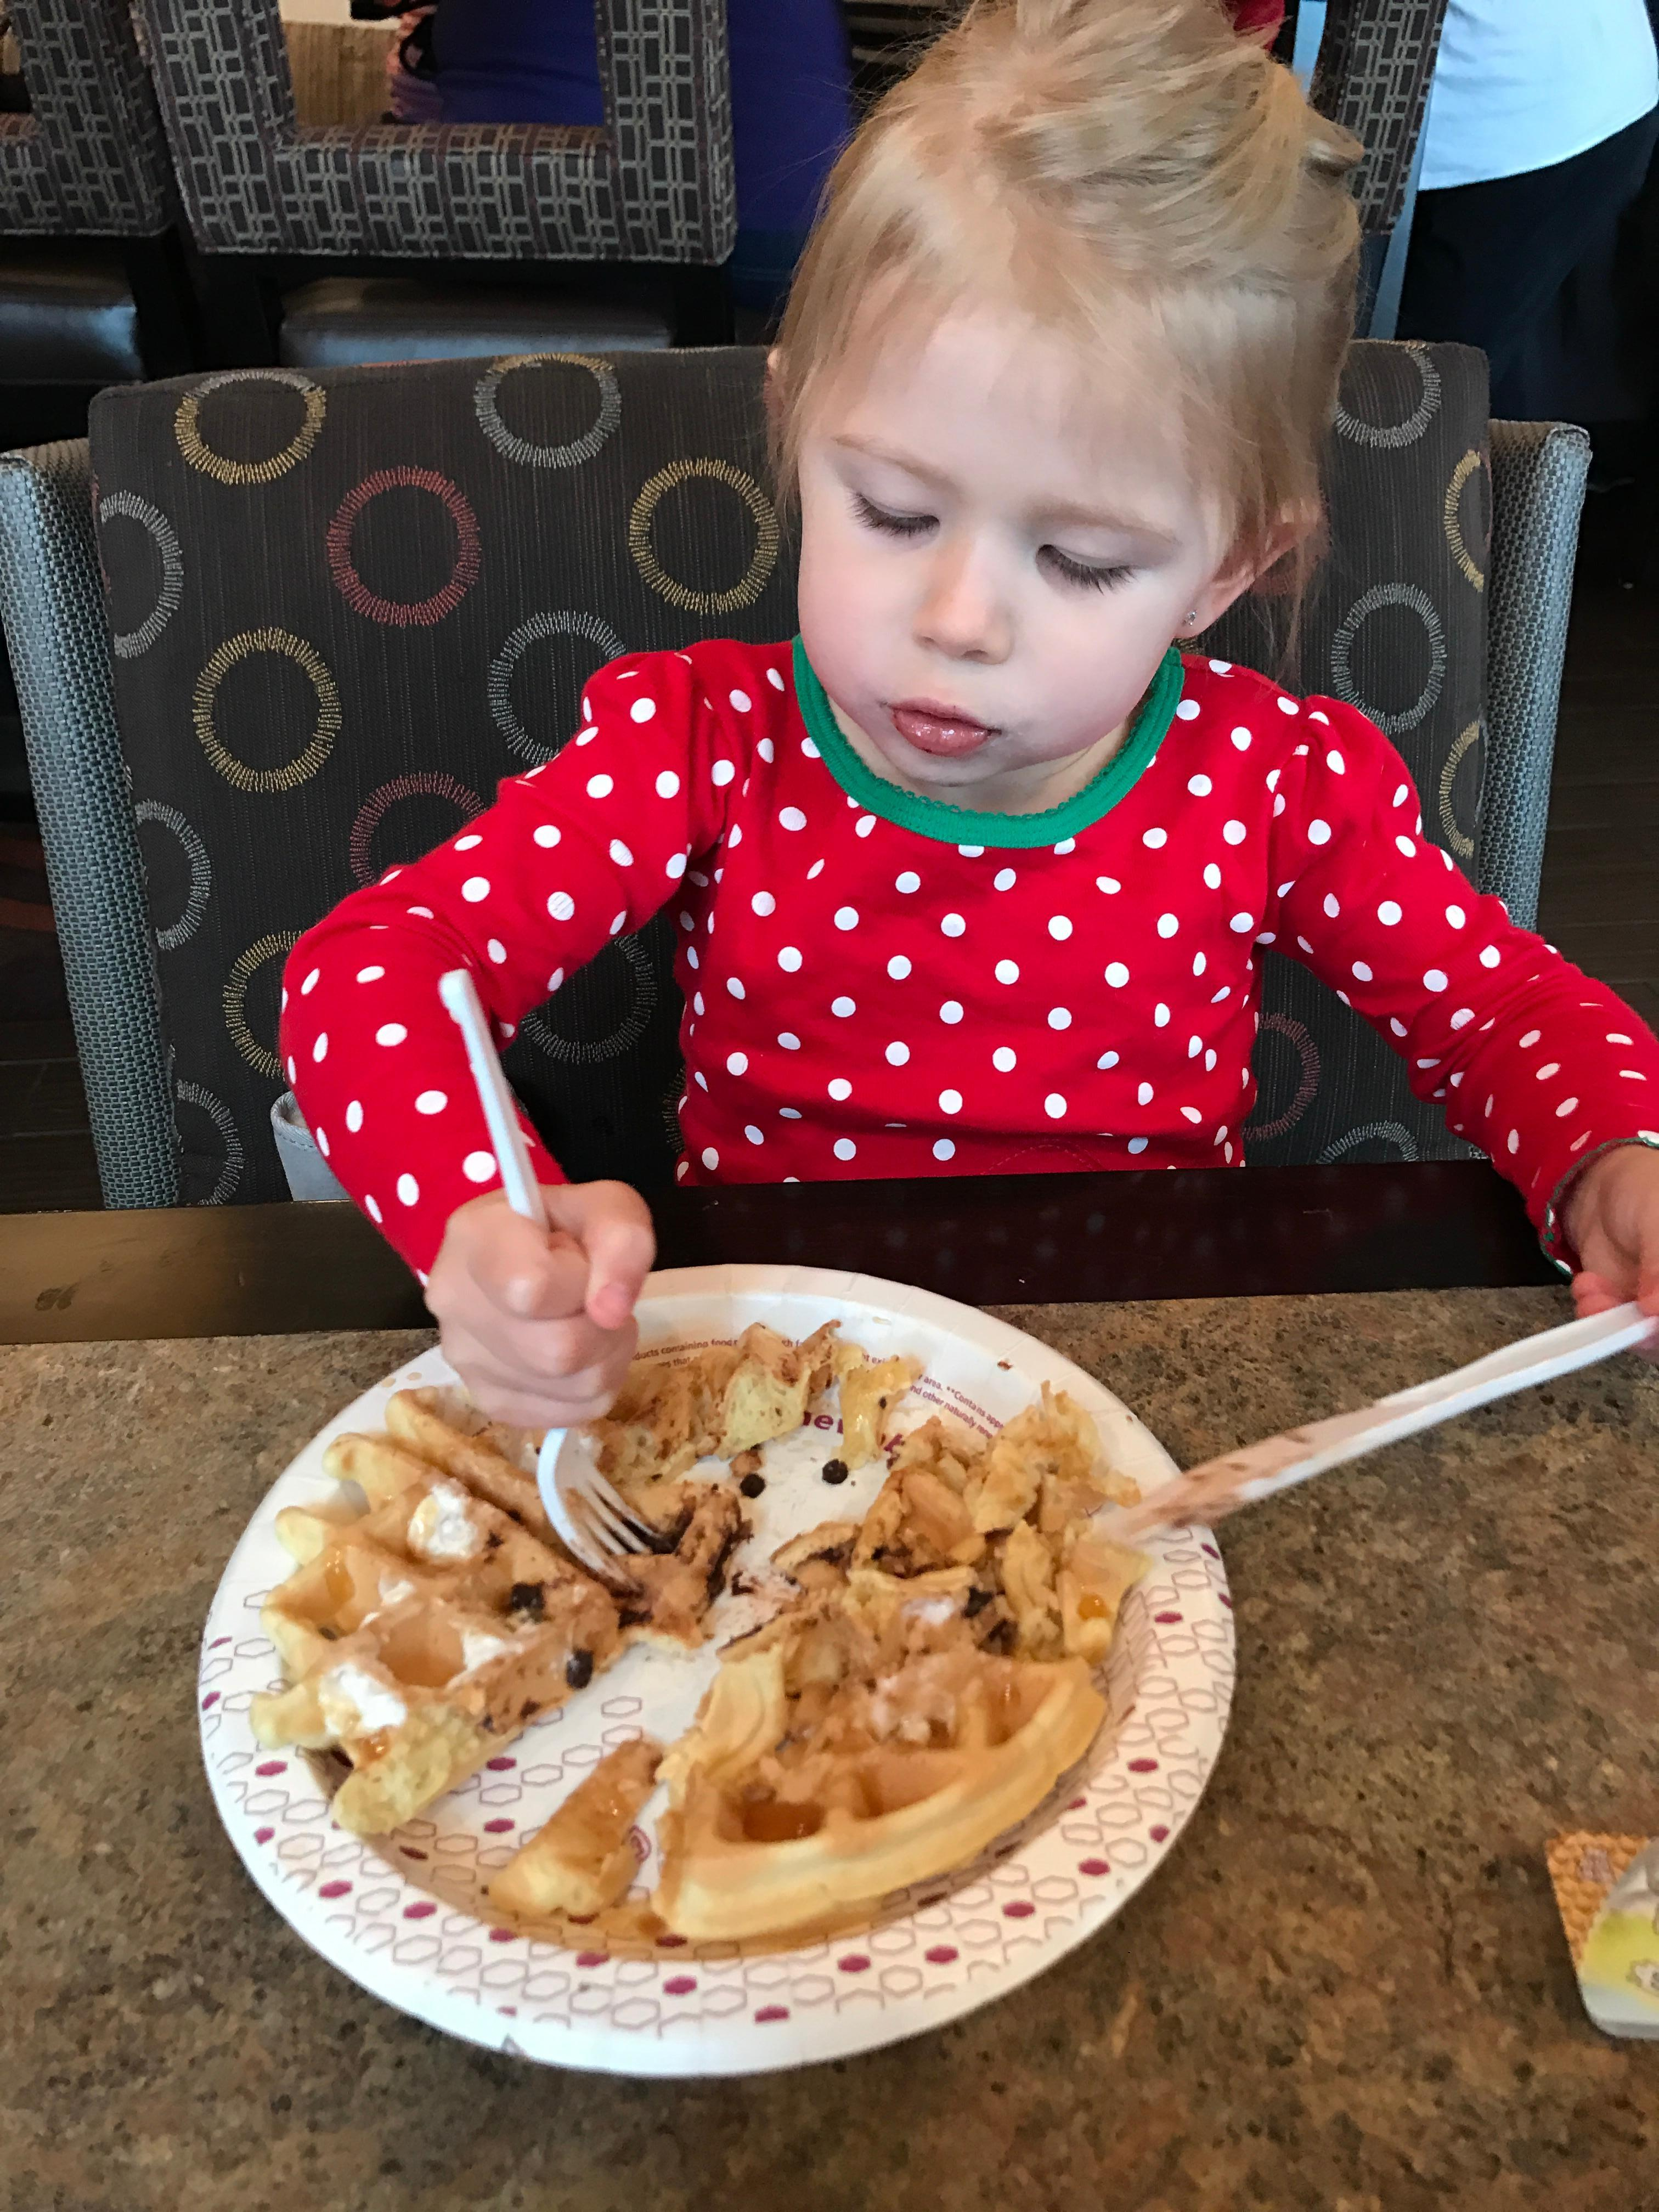 Loving the waffle at breakfast with yummy toppings.